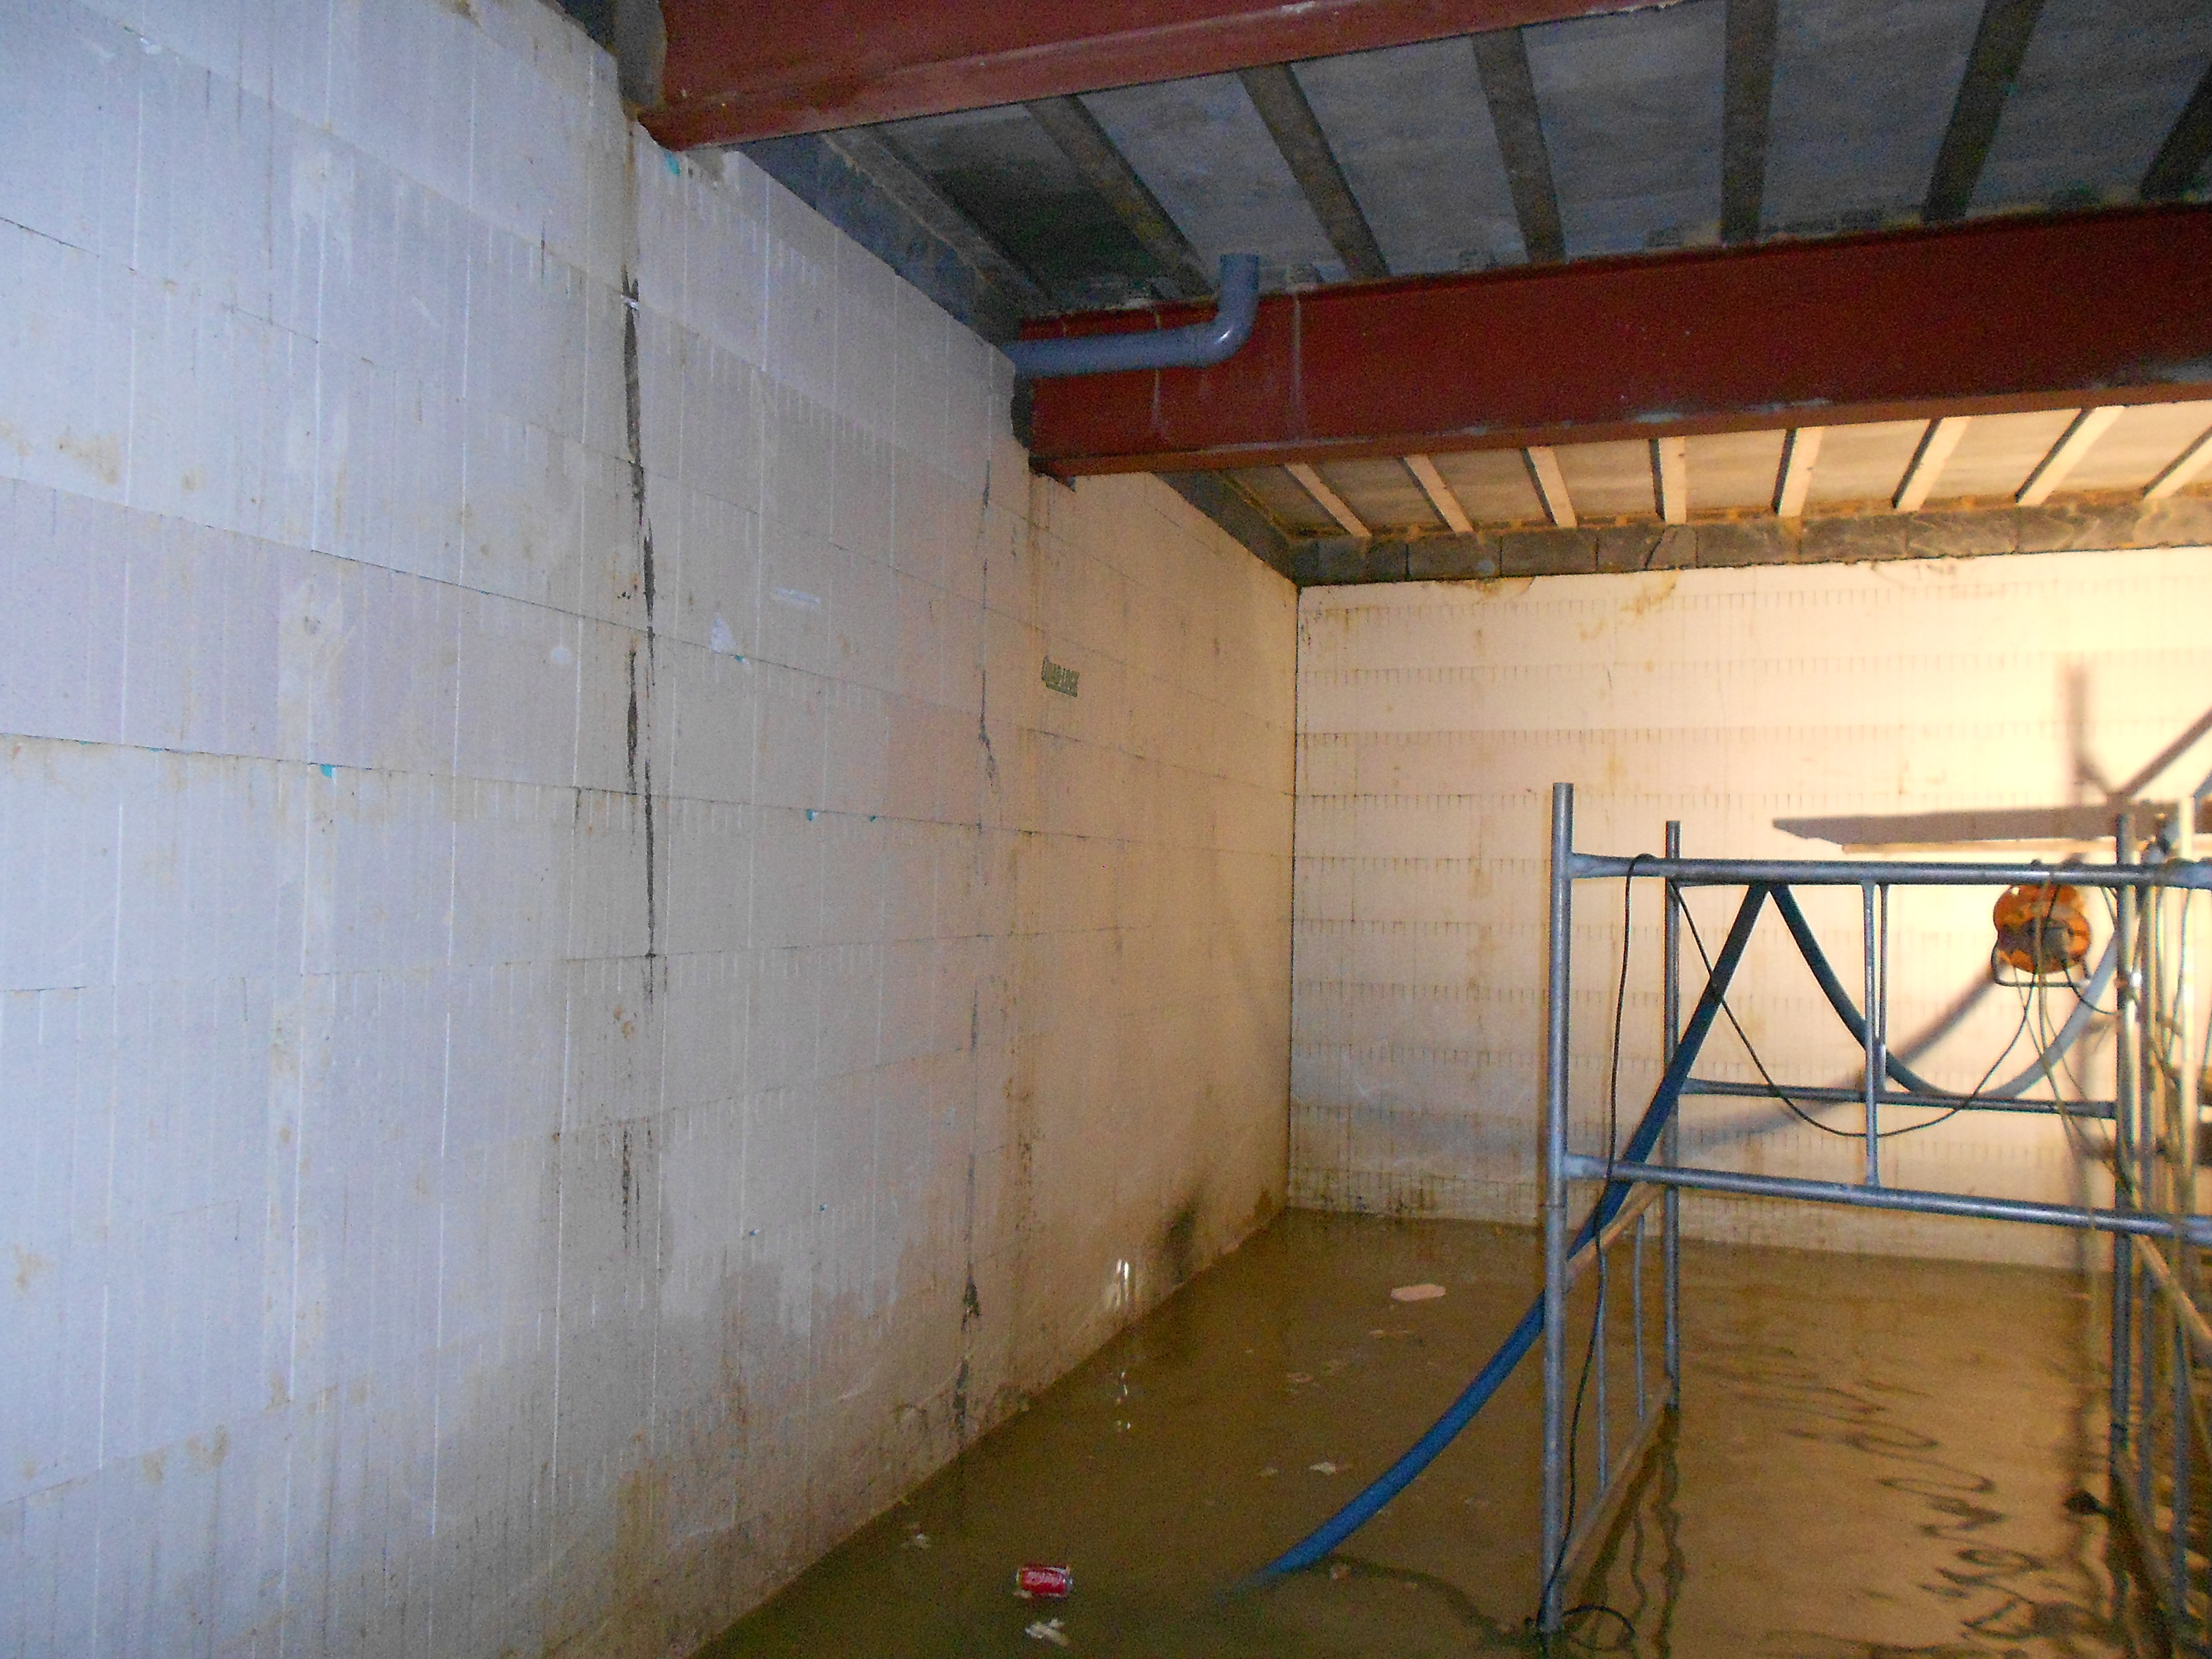 Constant pumping was required to dry the basement during works